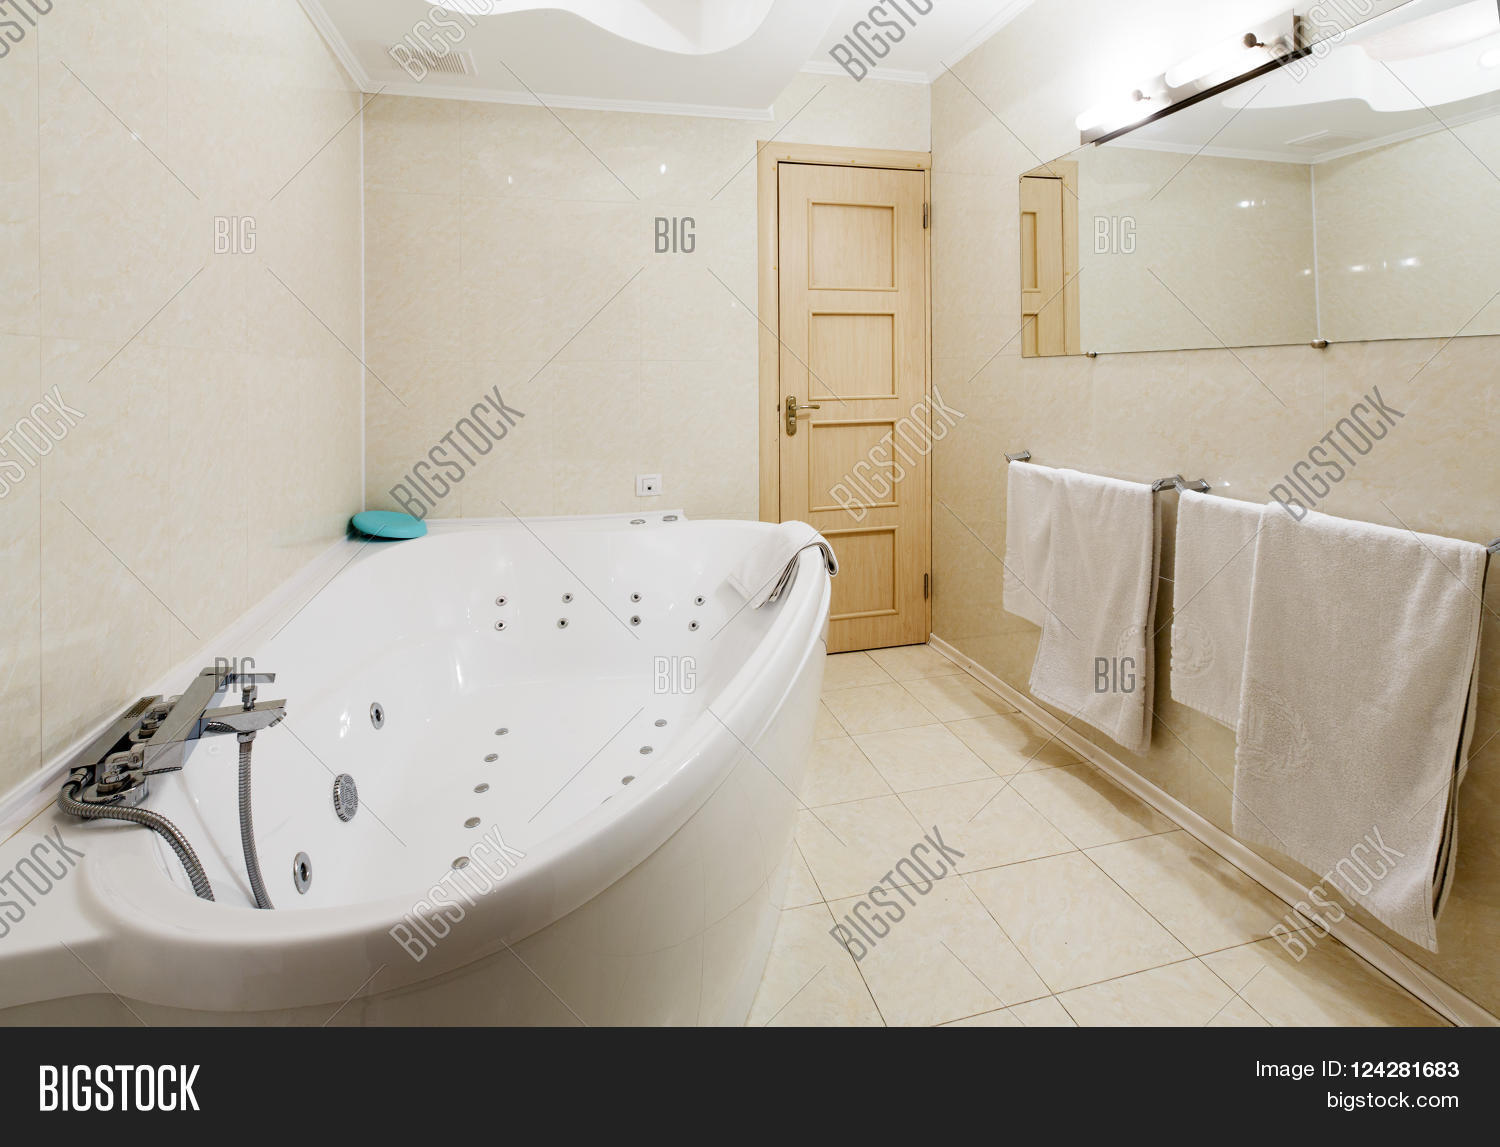 Interior Design Hotel Image & Photo (Free Trial) | Bigstock